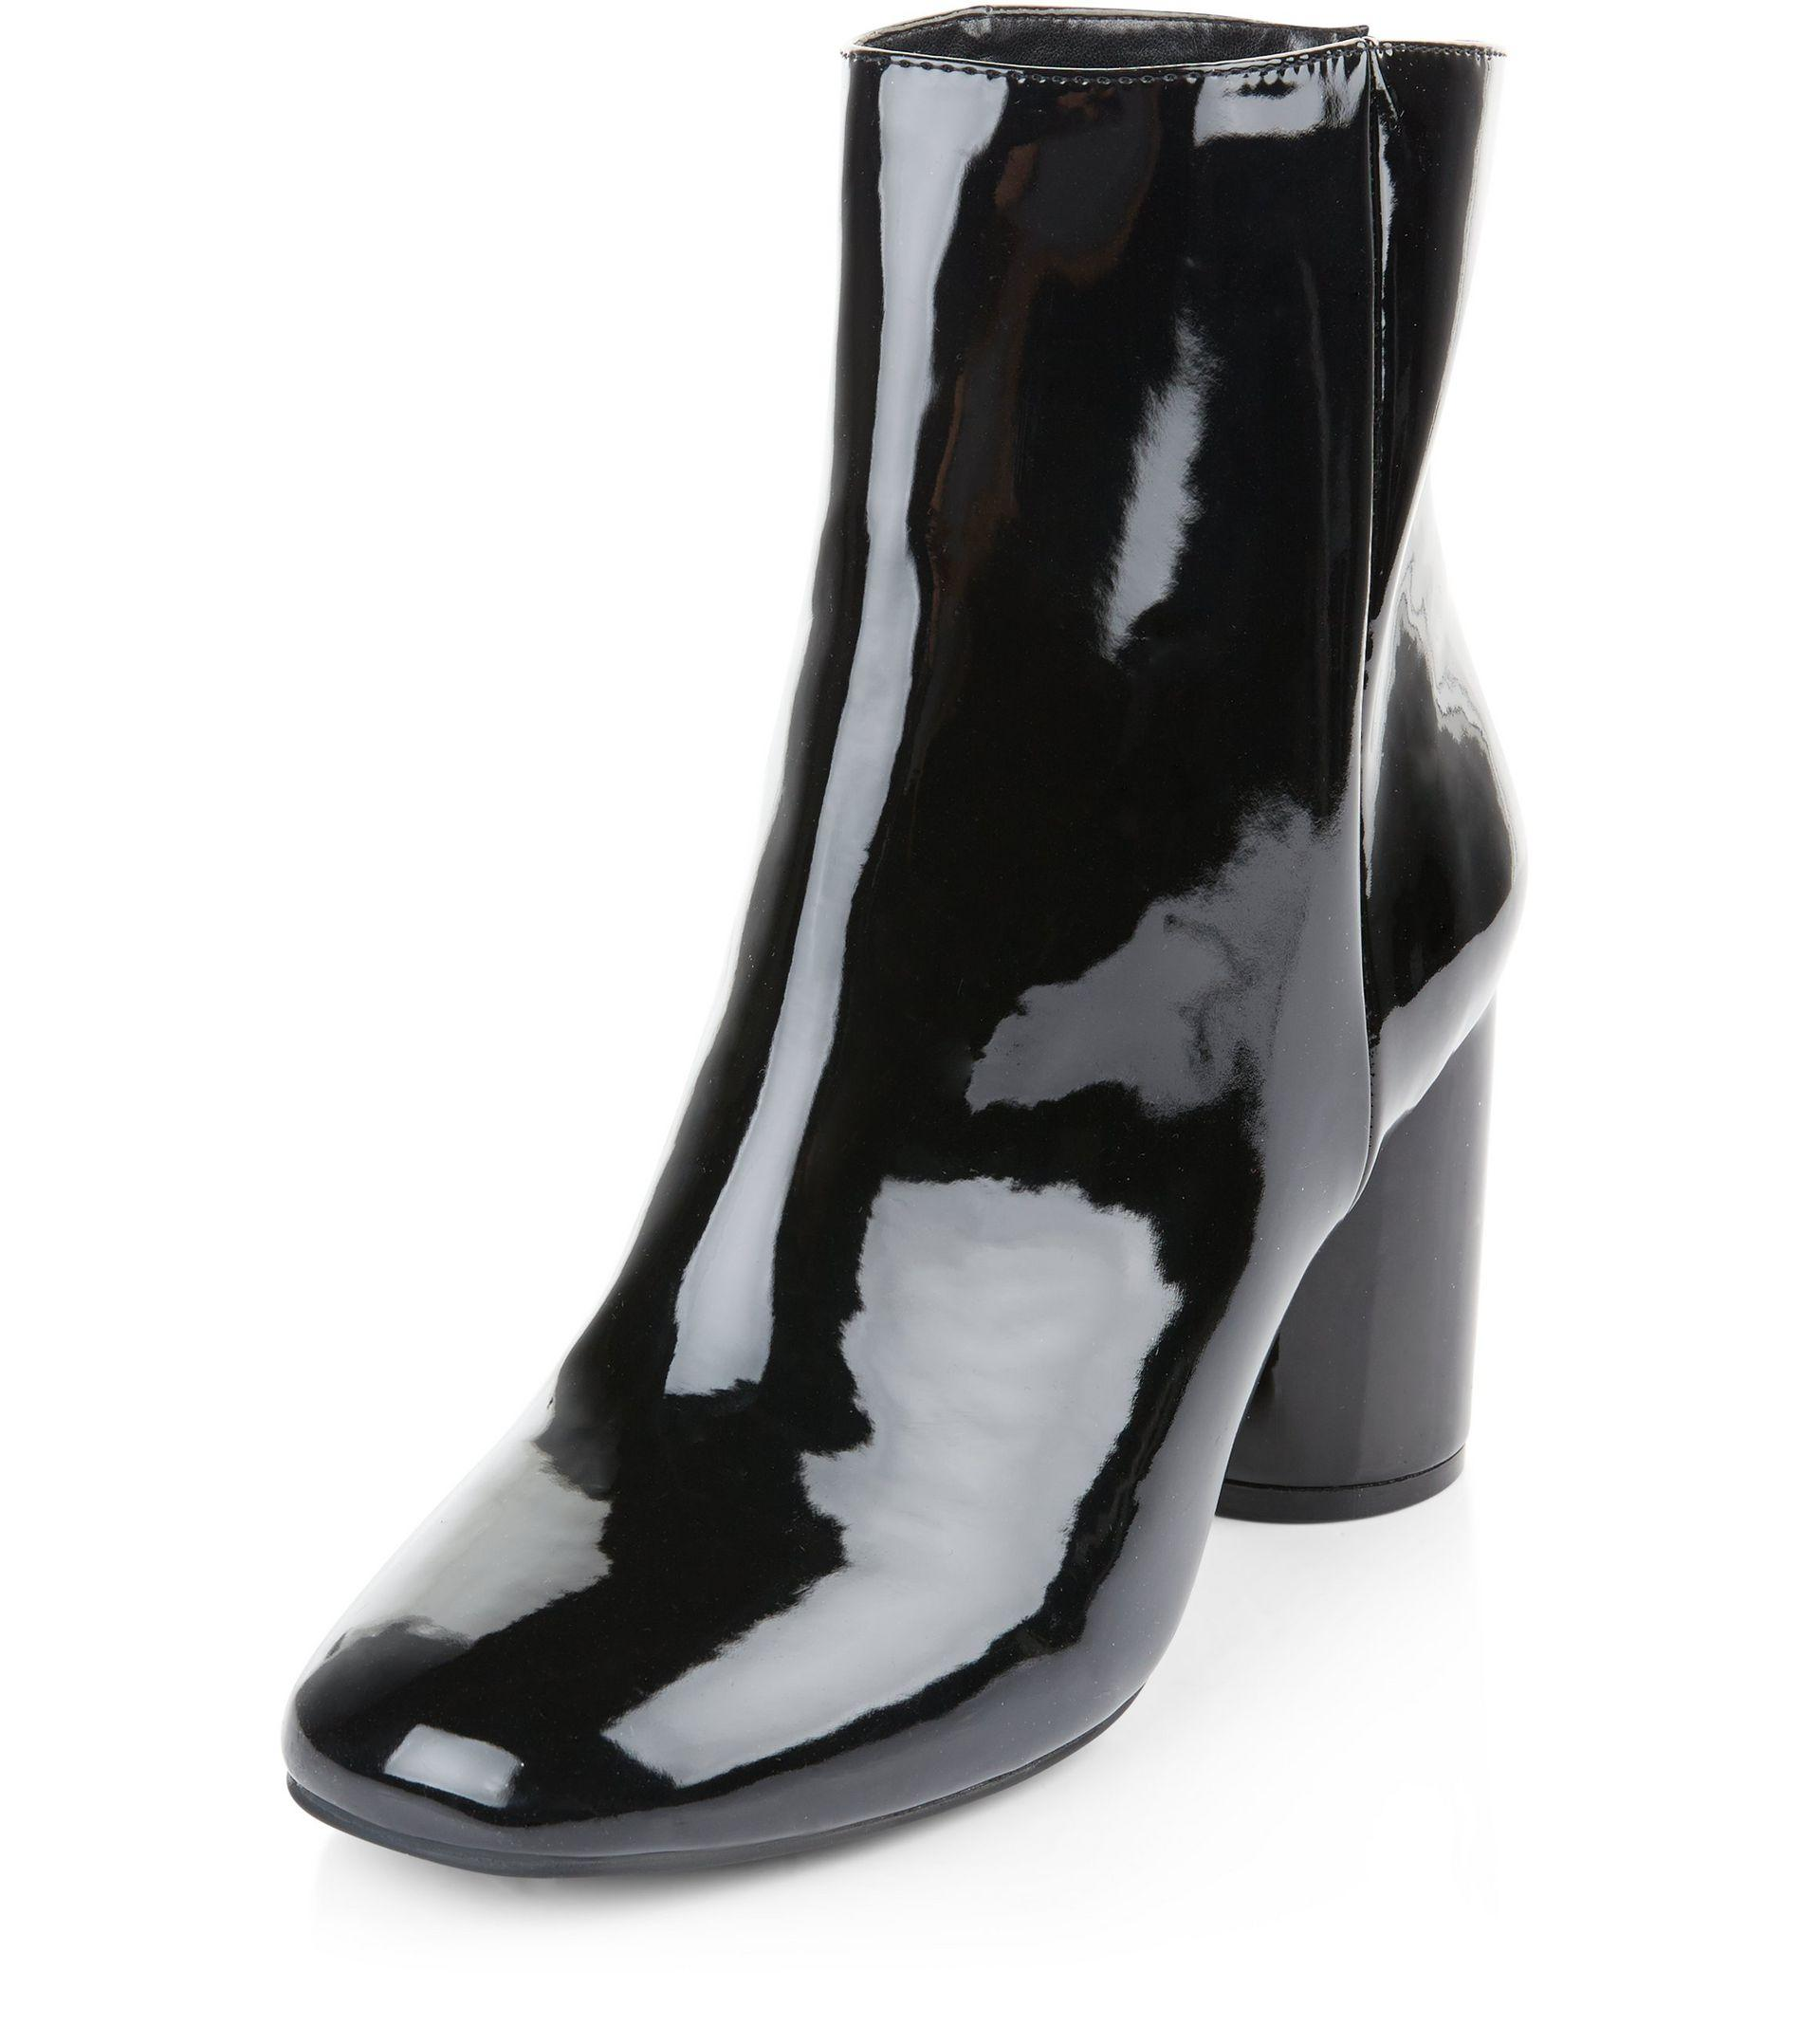 New Look Wide Fit Black Patent Cylindrical Heel Ankle Boots